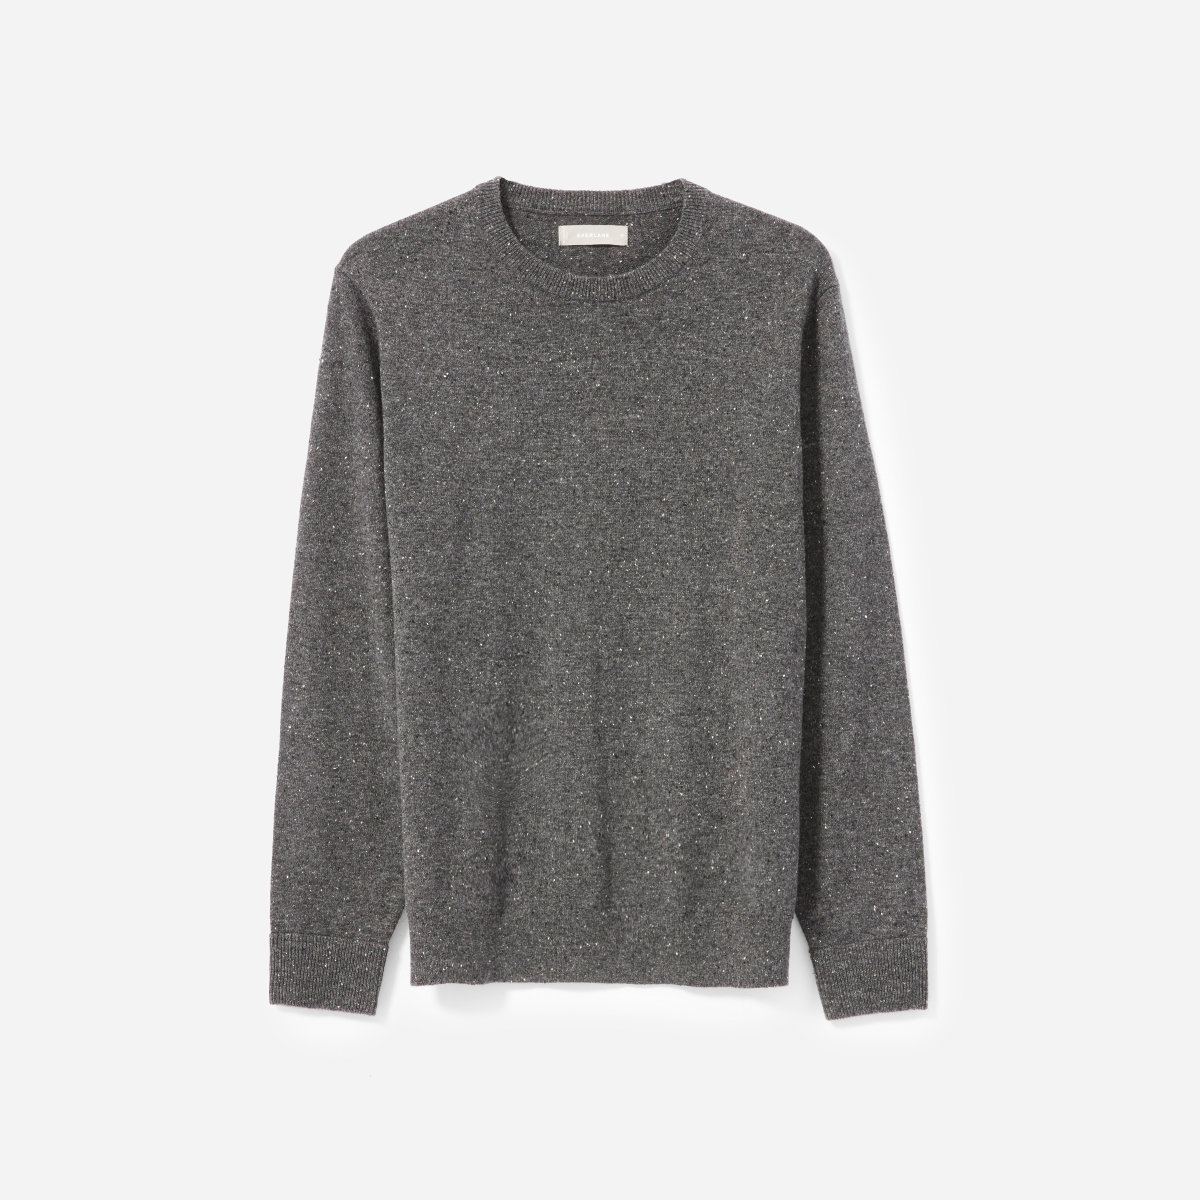 SWEATER FOR HIM | $100 - Everlane